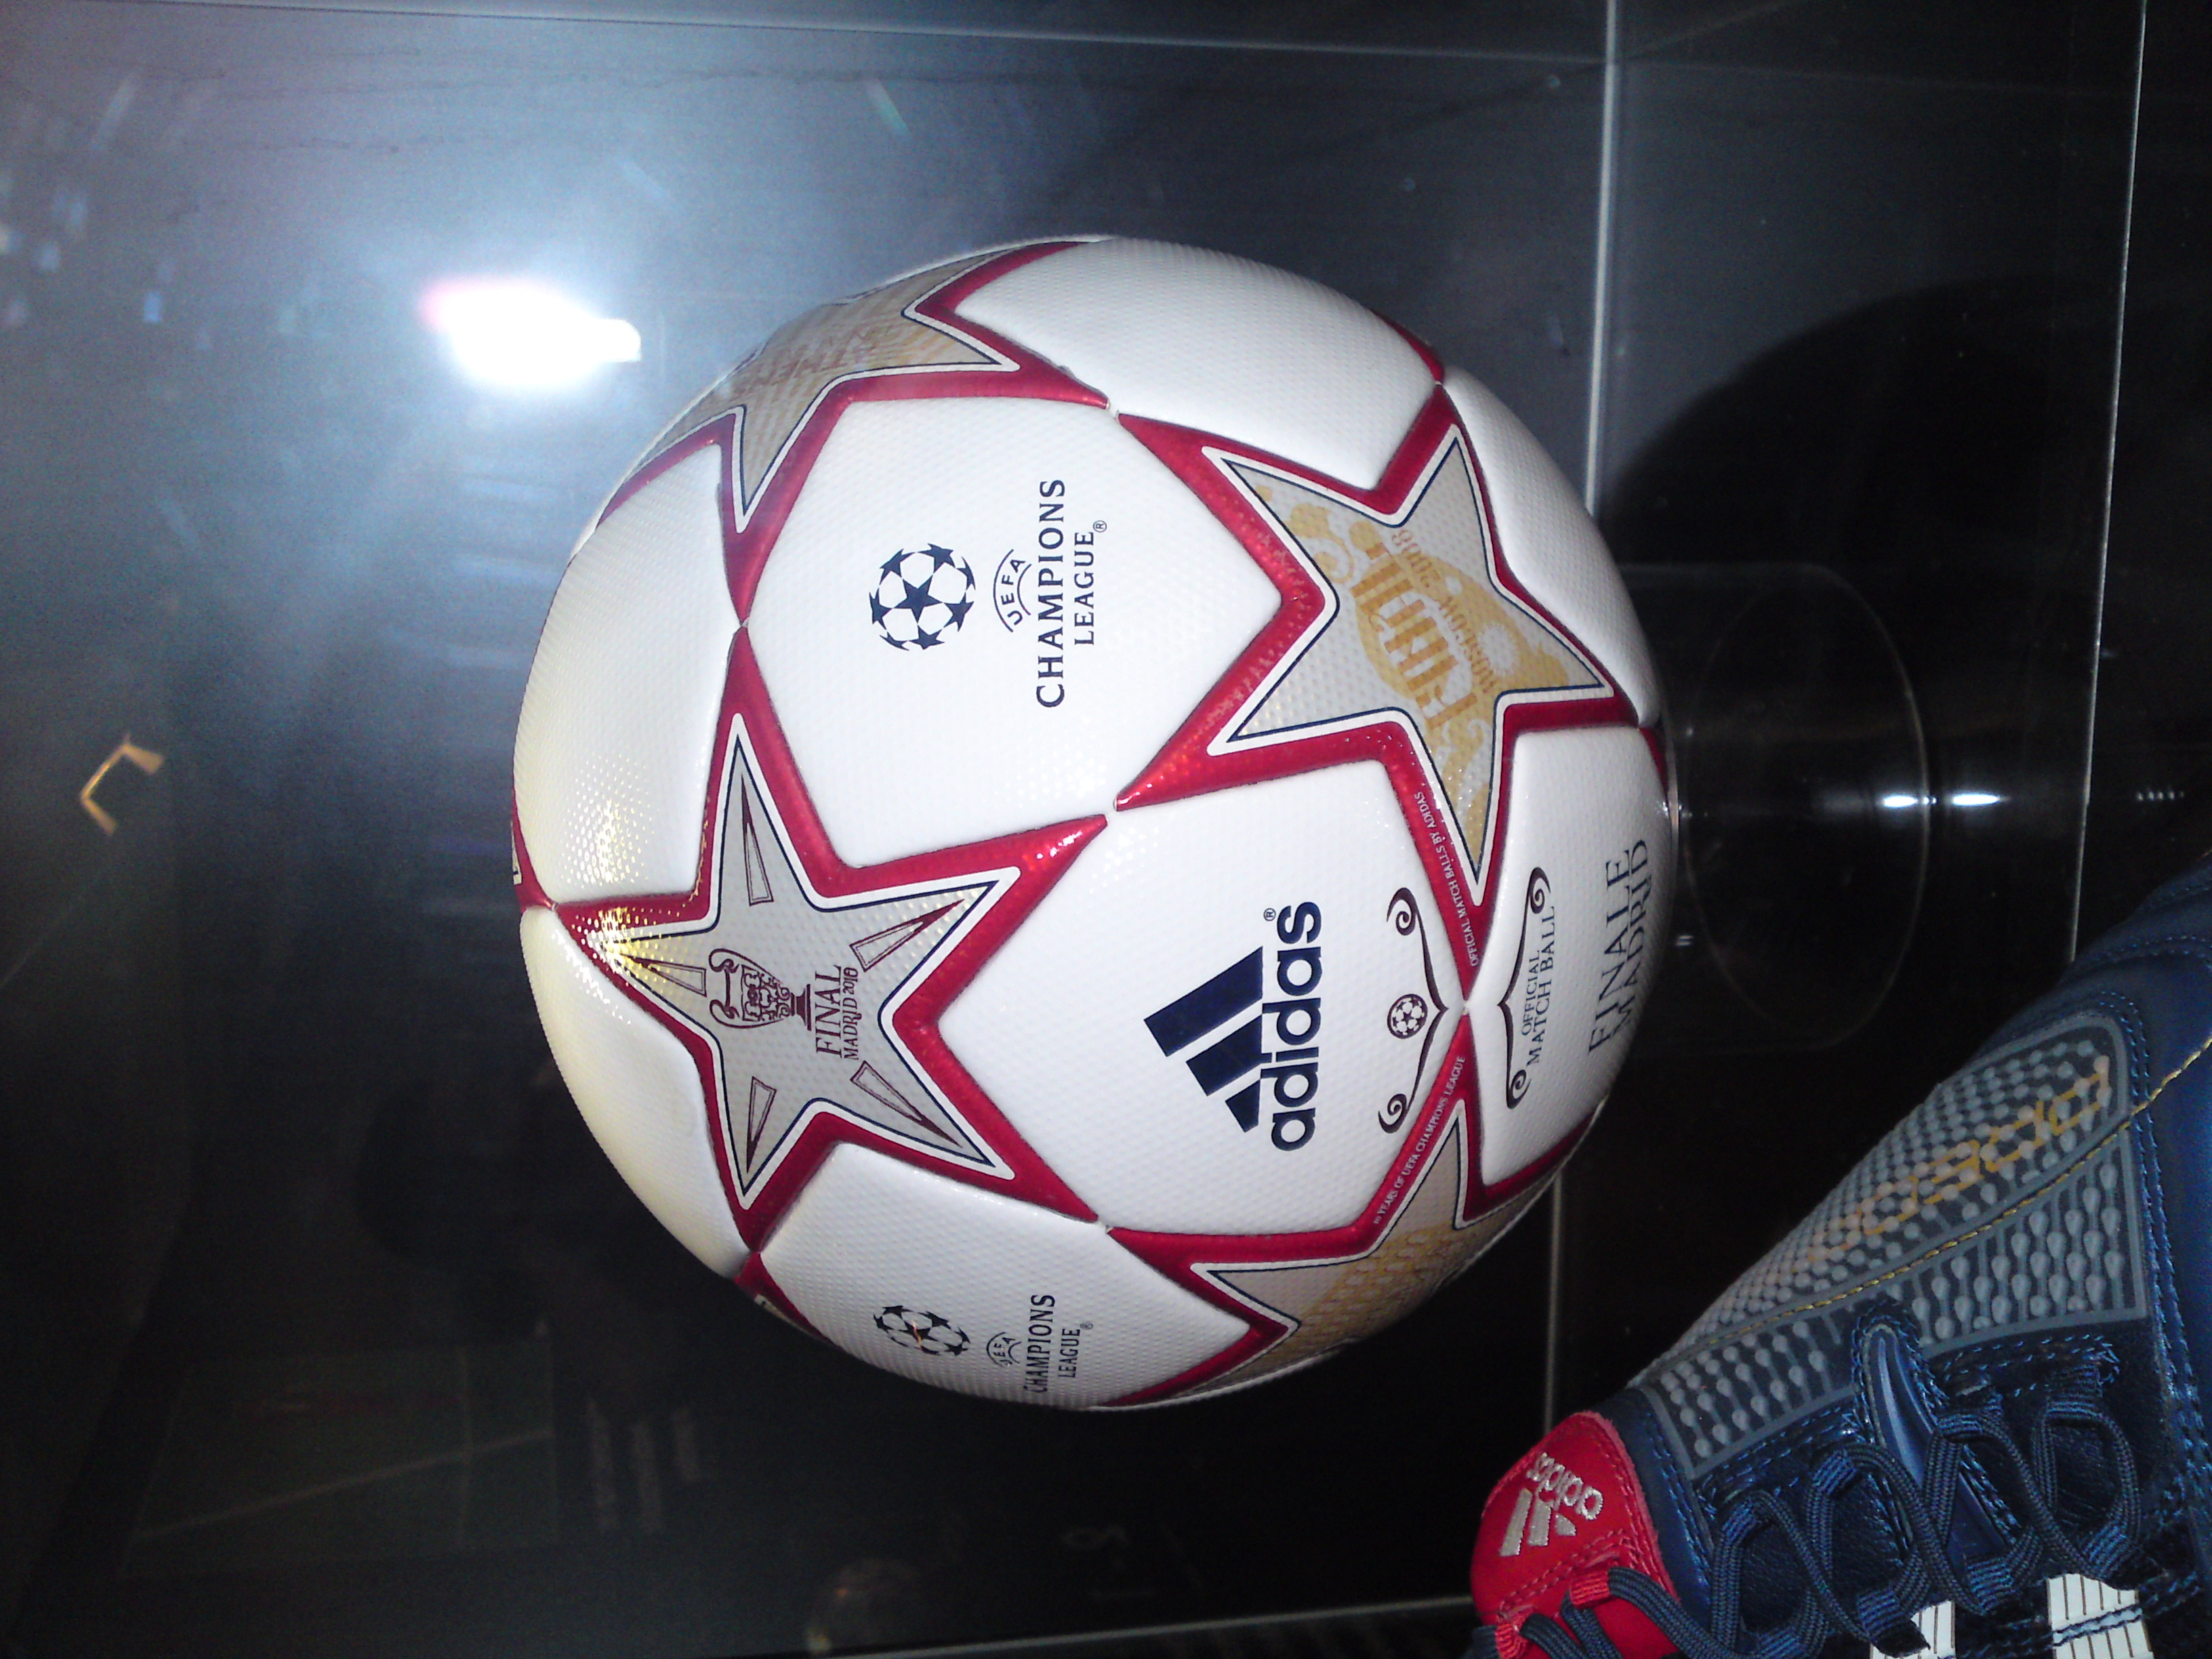 039cce012 File:2010 UEFA Champions League Final ball.JPG - Wikimedia Commons